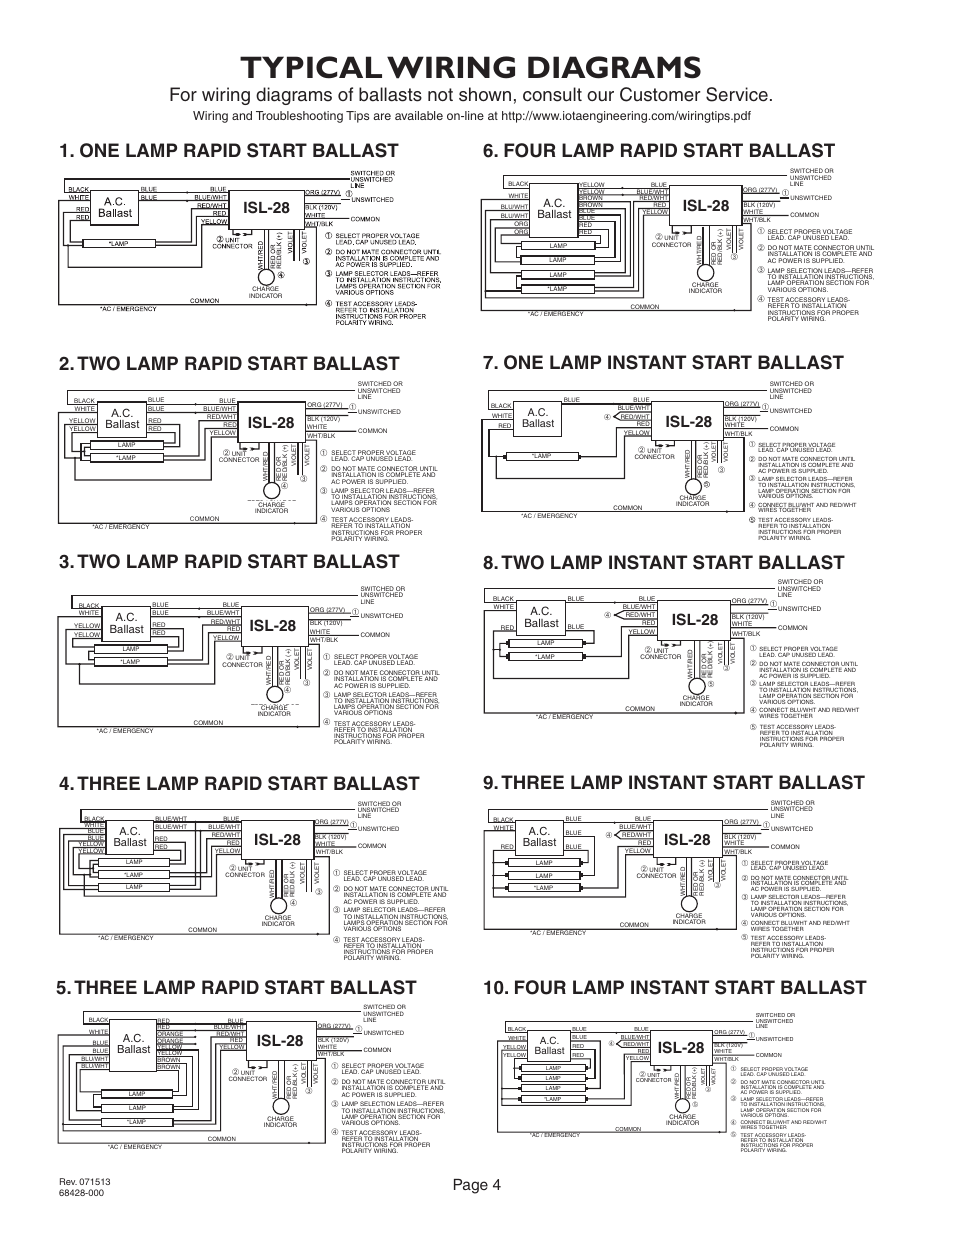 Bodine B50 2 Lamp Ballast Wiring Diagram Further Fluorescent Light